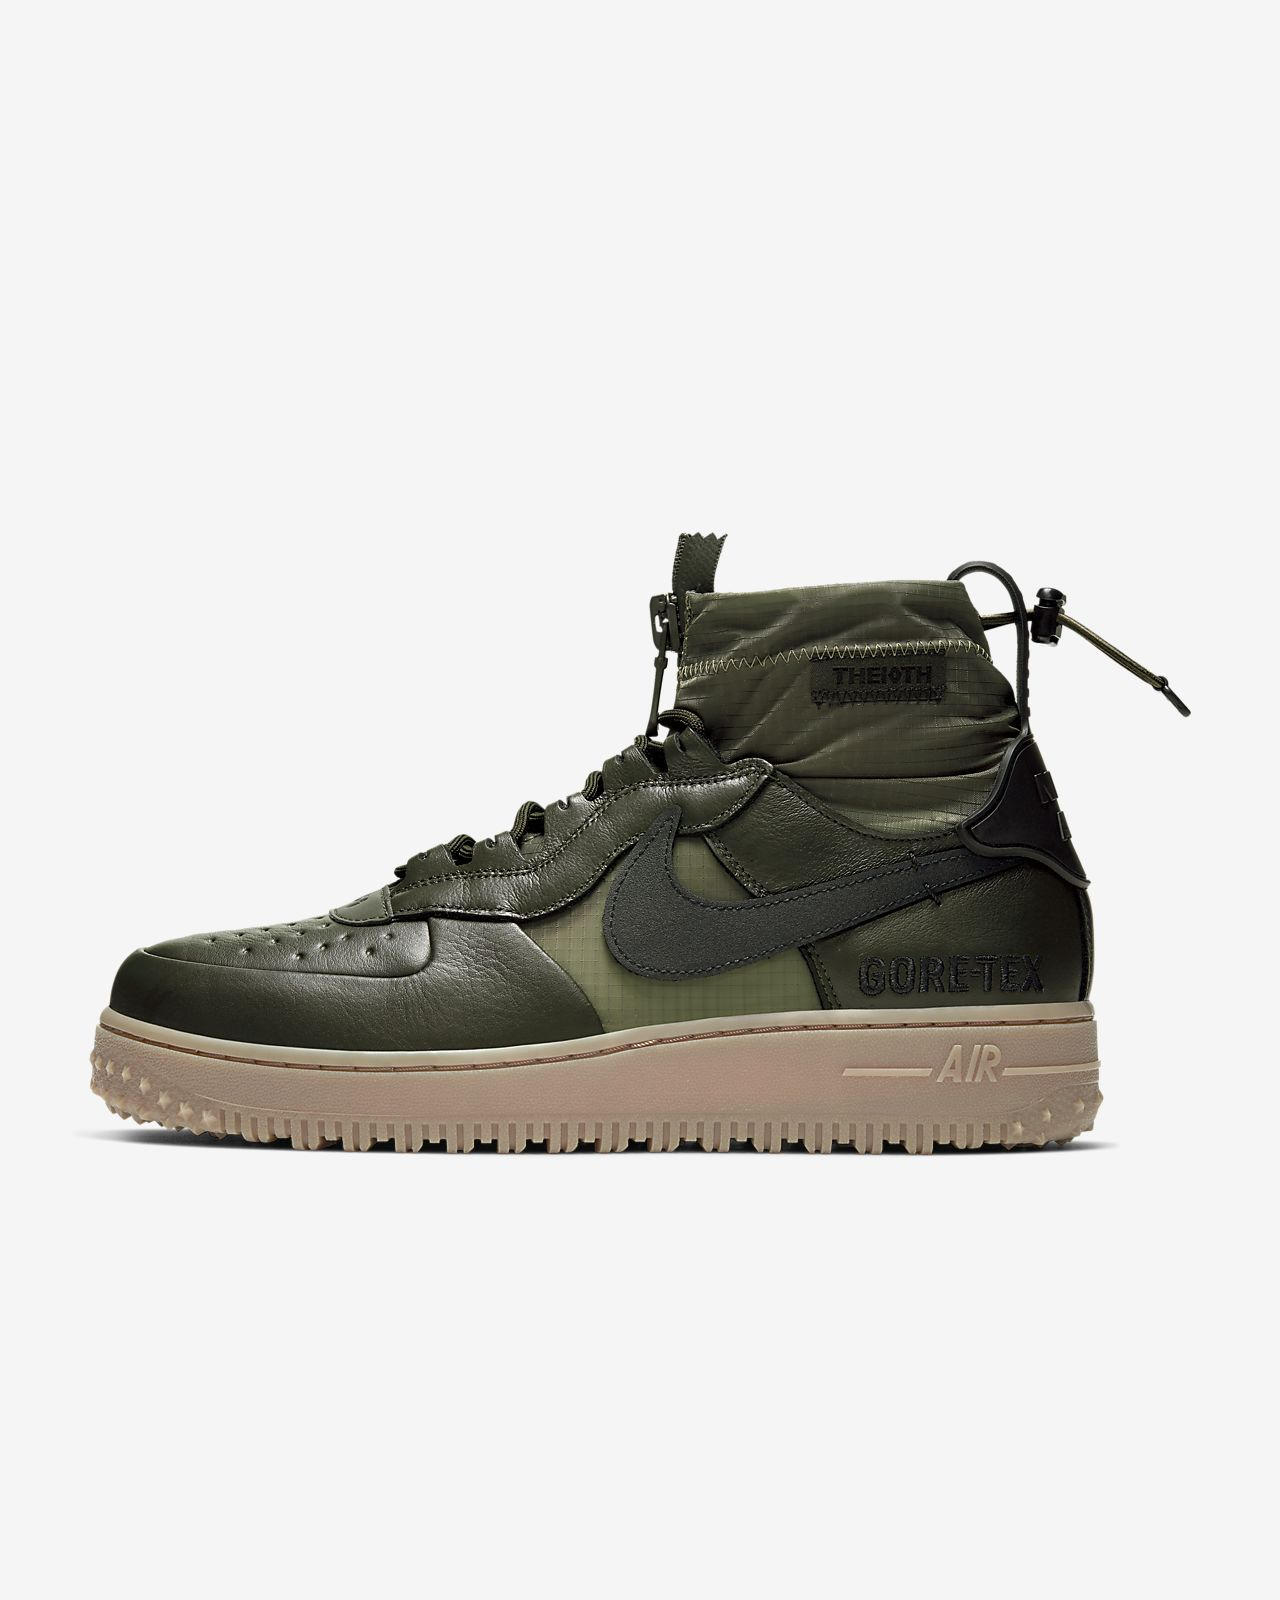 Gore tex boots, Nike winter boots, Nike